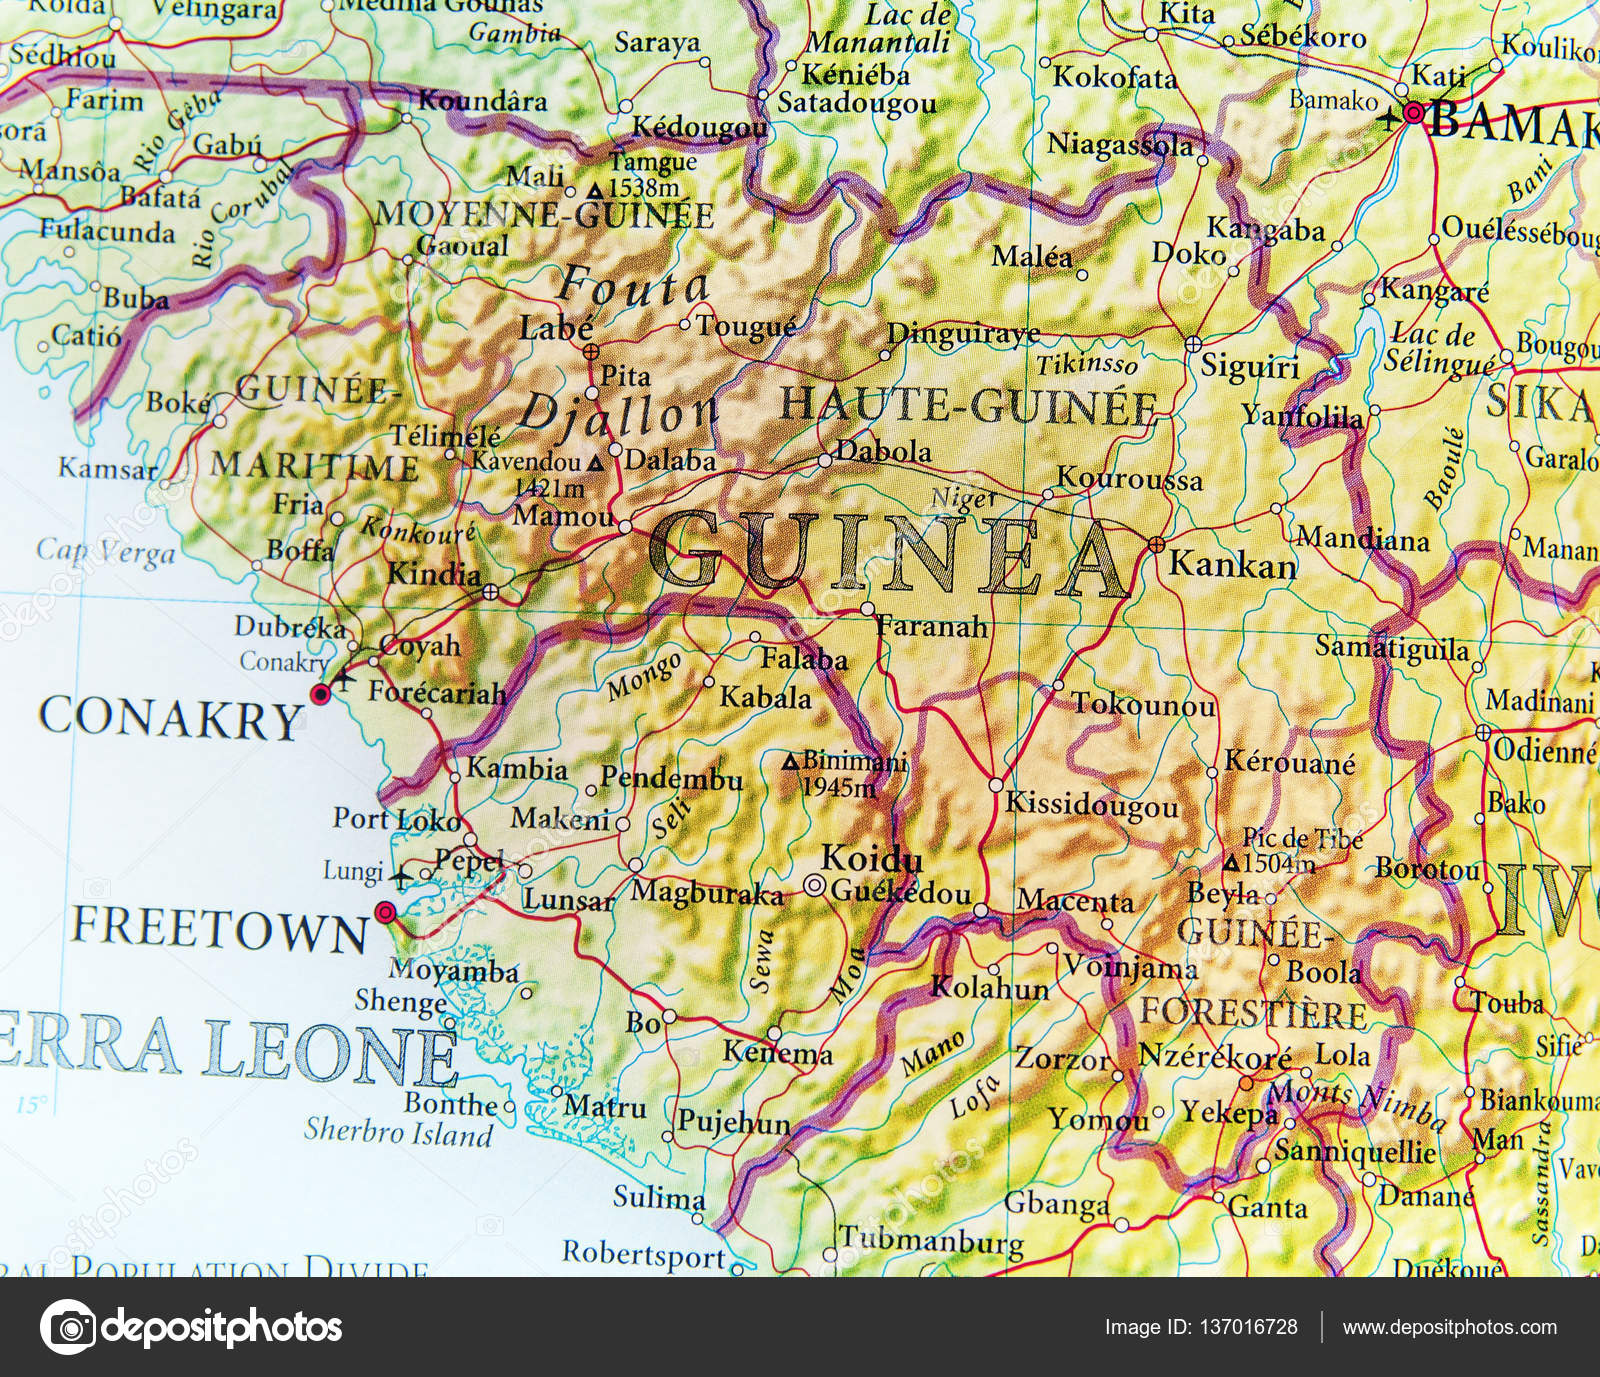 Guinea Cartina Geografica.Geographic Map Of Guinea With Important Cities Stock Photo Image By C Bennian 137016728